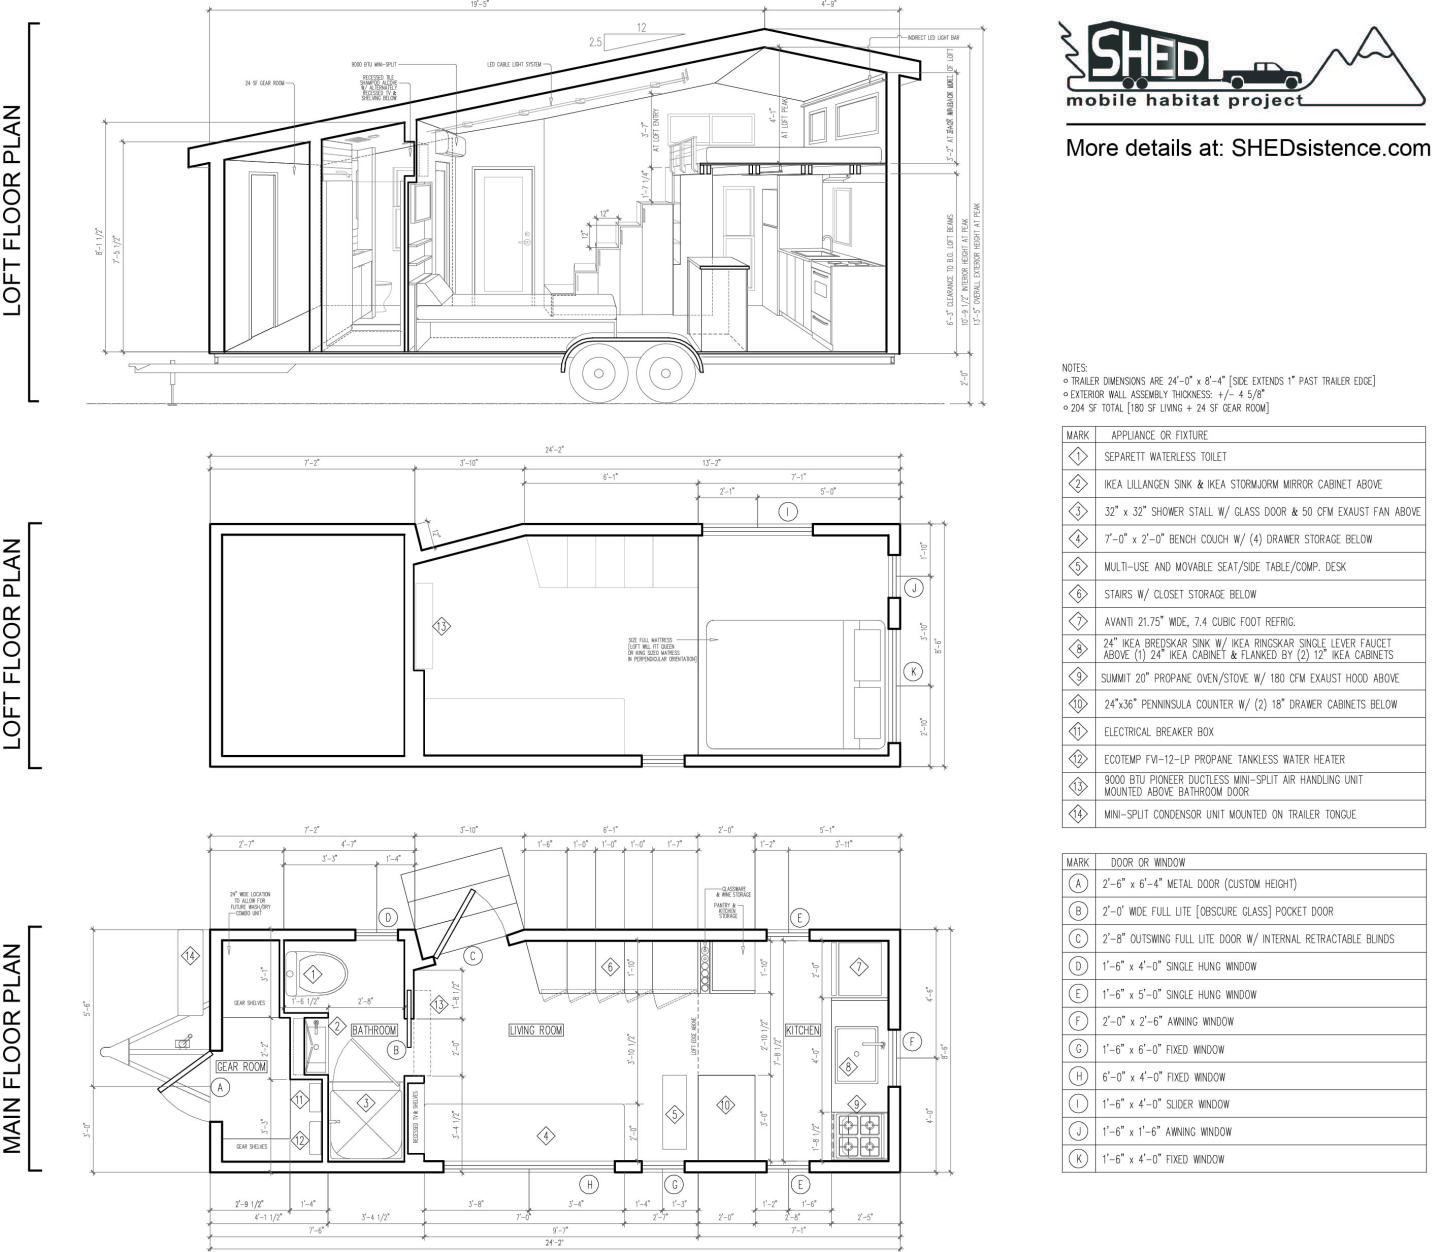 Shed Dimensioned Floor Plan Small Floor Plans Tiny House Floor Plans Tiny House Australia